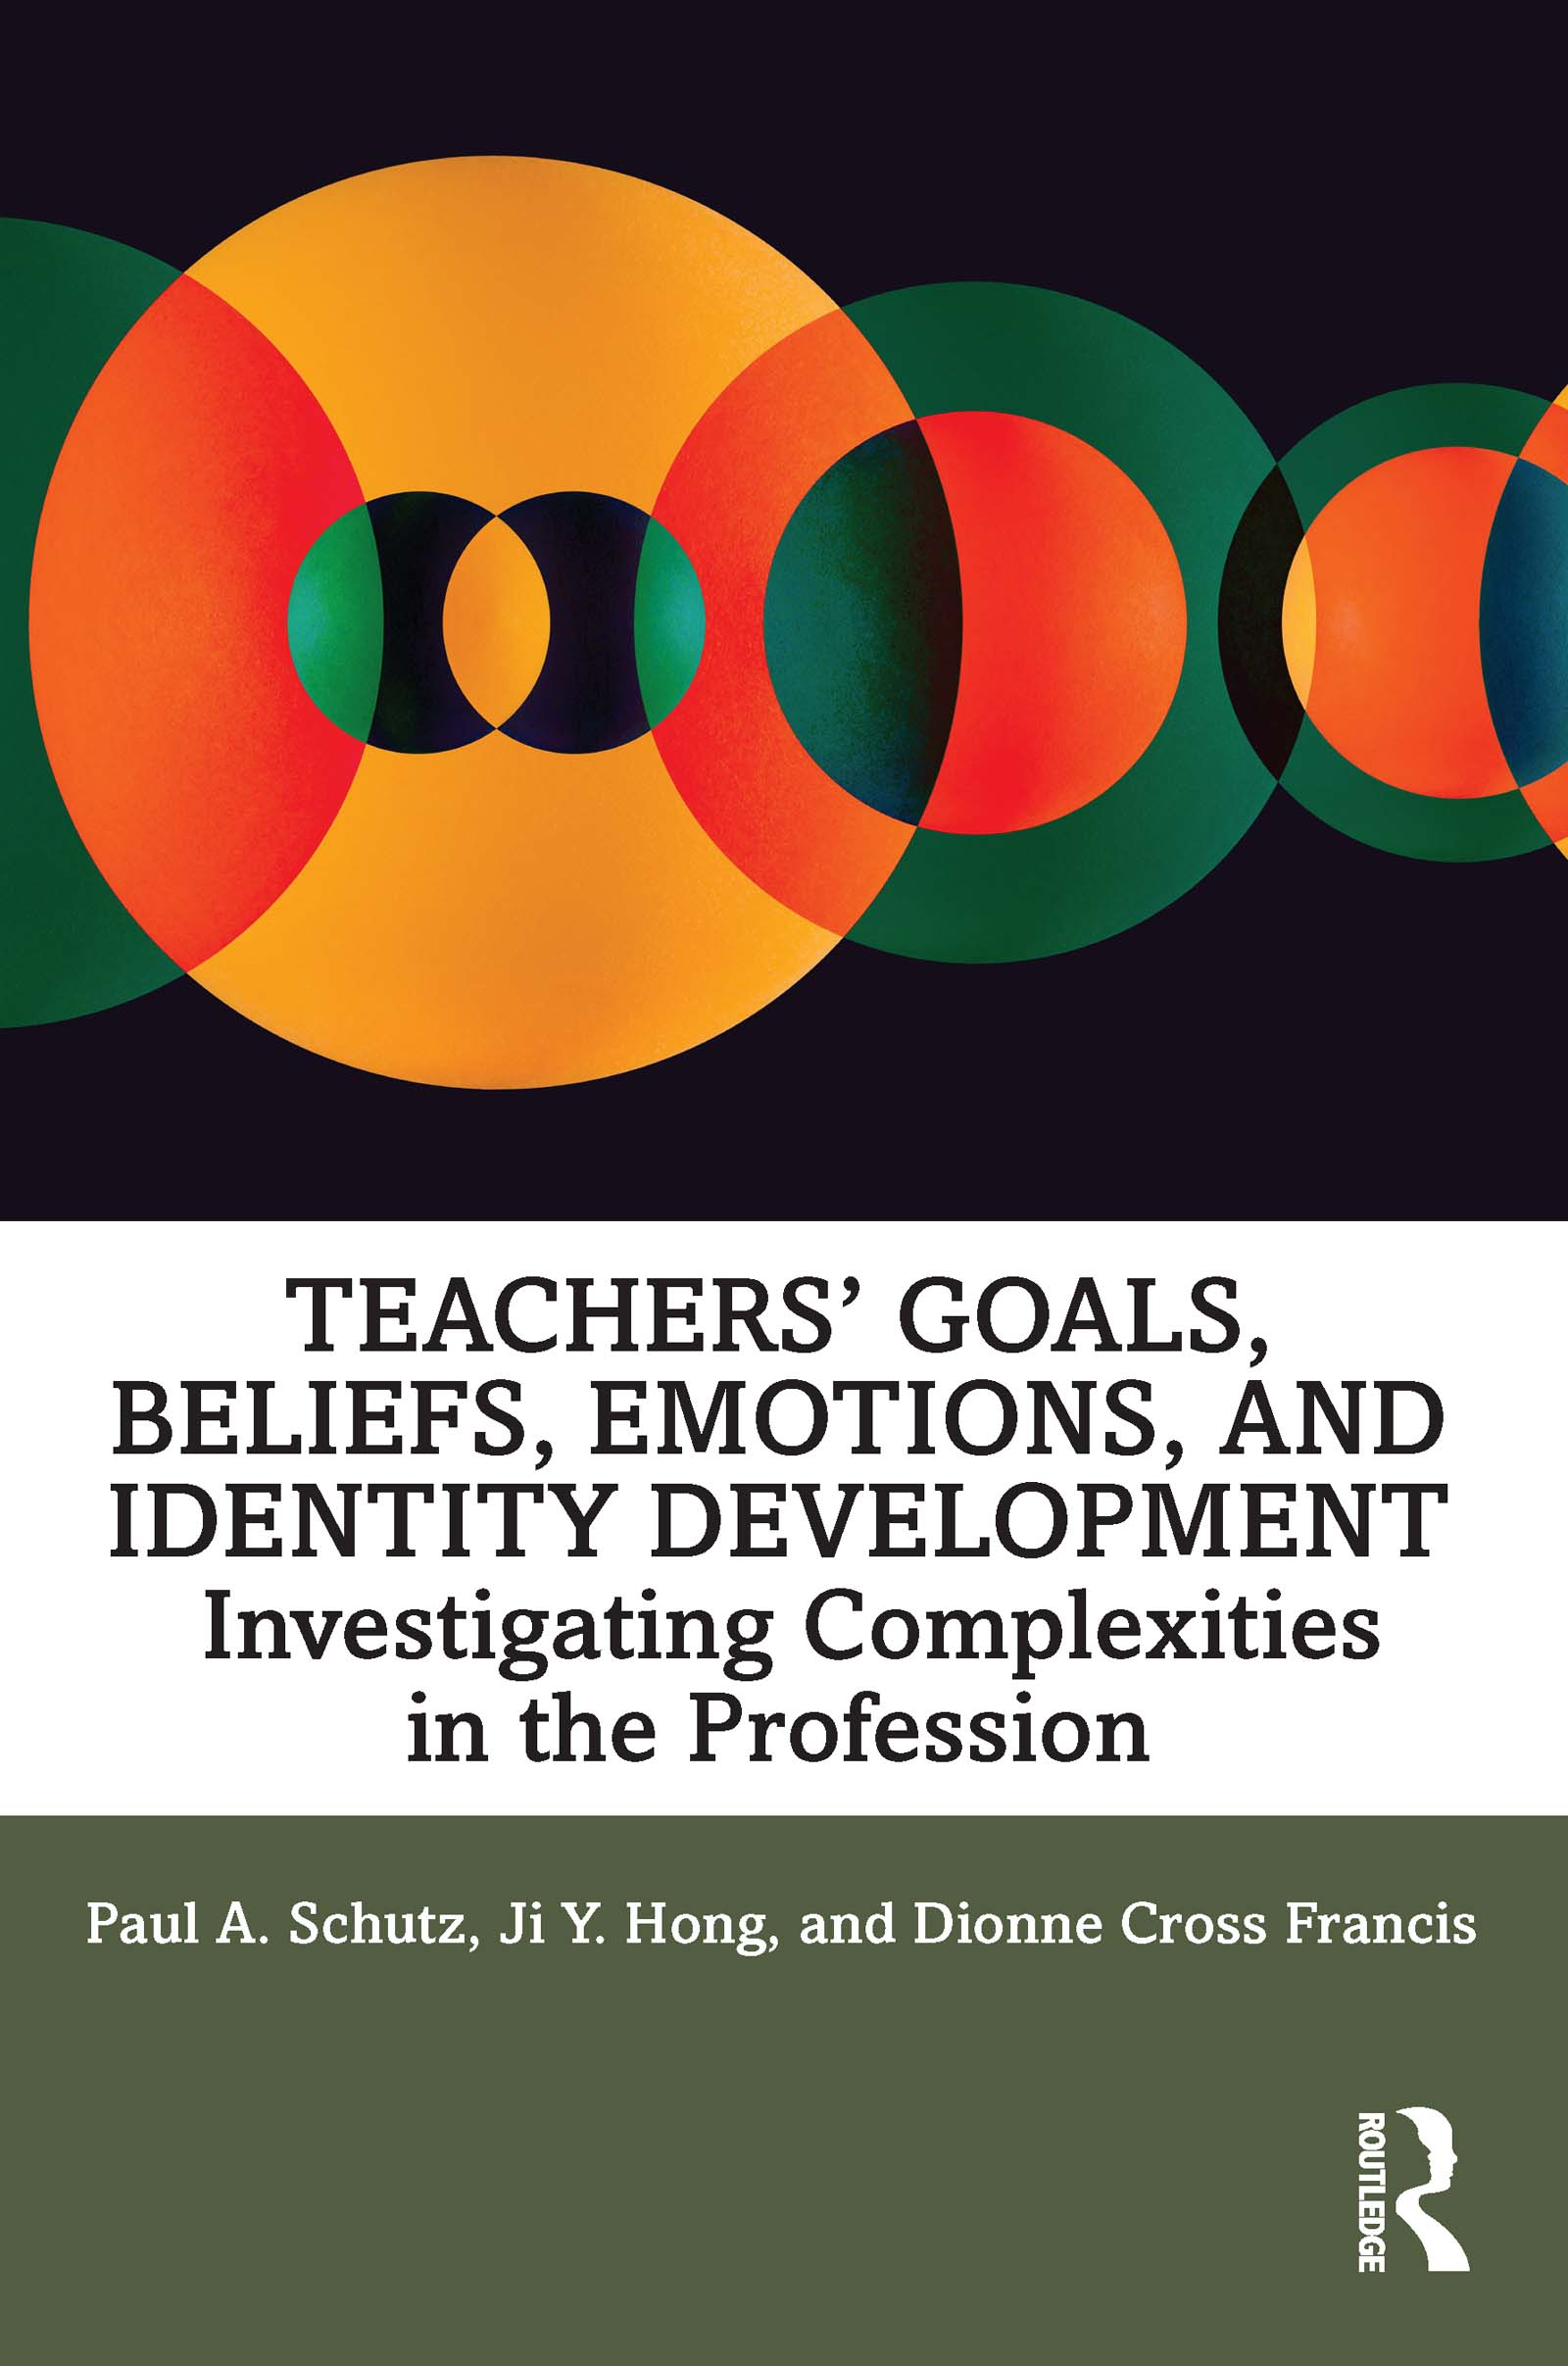 Teachers' Goals, Beliefs, Emotions, and Identity Development: Investigating Complexities in the Profession book cover